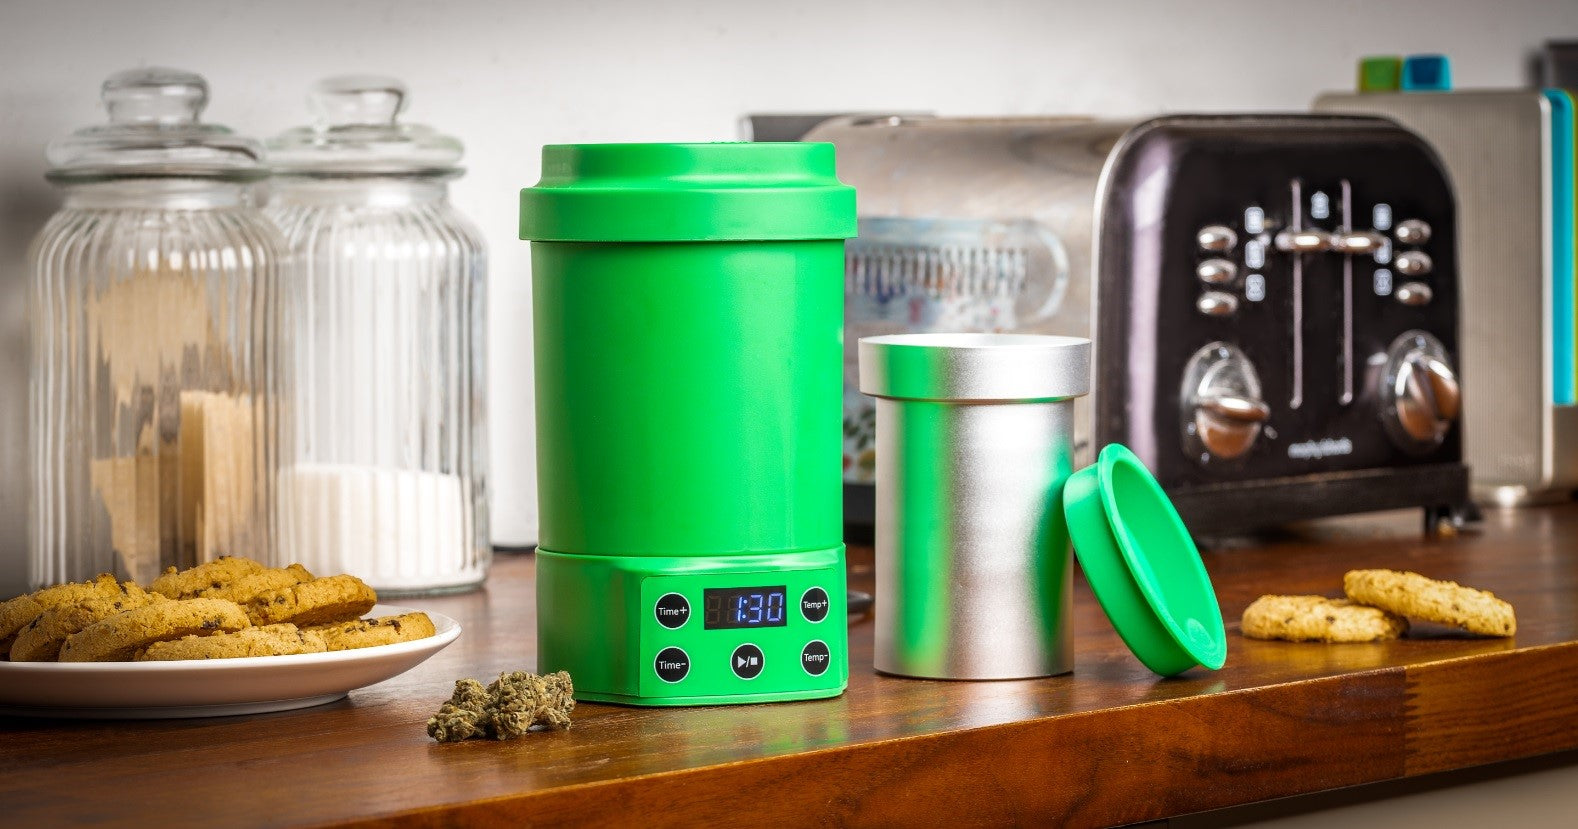 Nebula Boost Decarboxylator & Infuser machine for Botanicals, Herb, Oils, Oral, Sublingual and Topical Use. Increases potency and purity to help improve the strength, taste, quality and overall effectiveness of your botanicals.